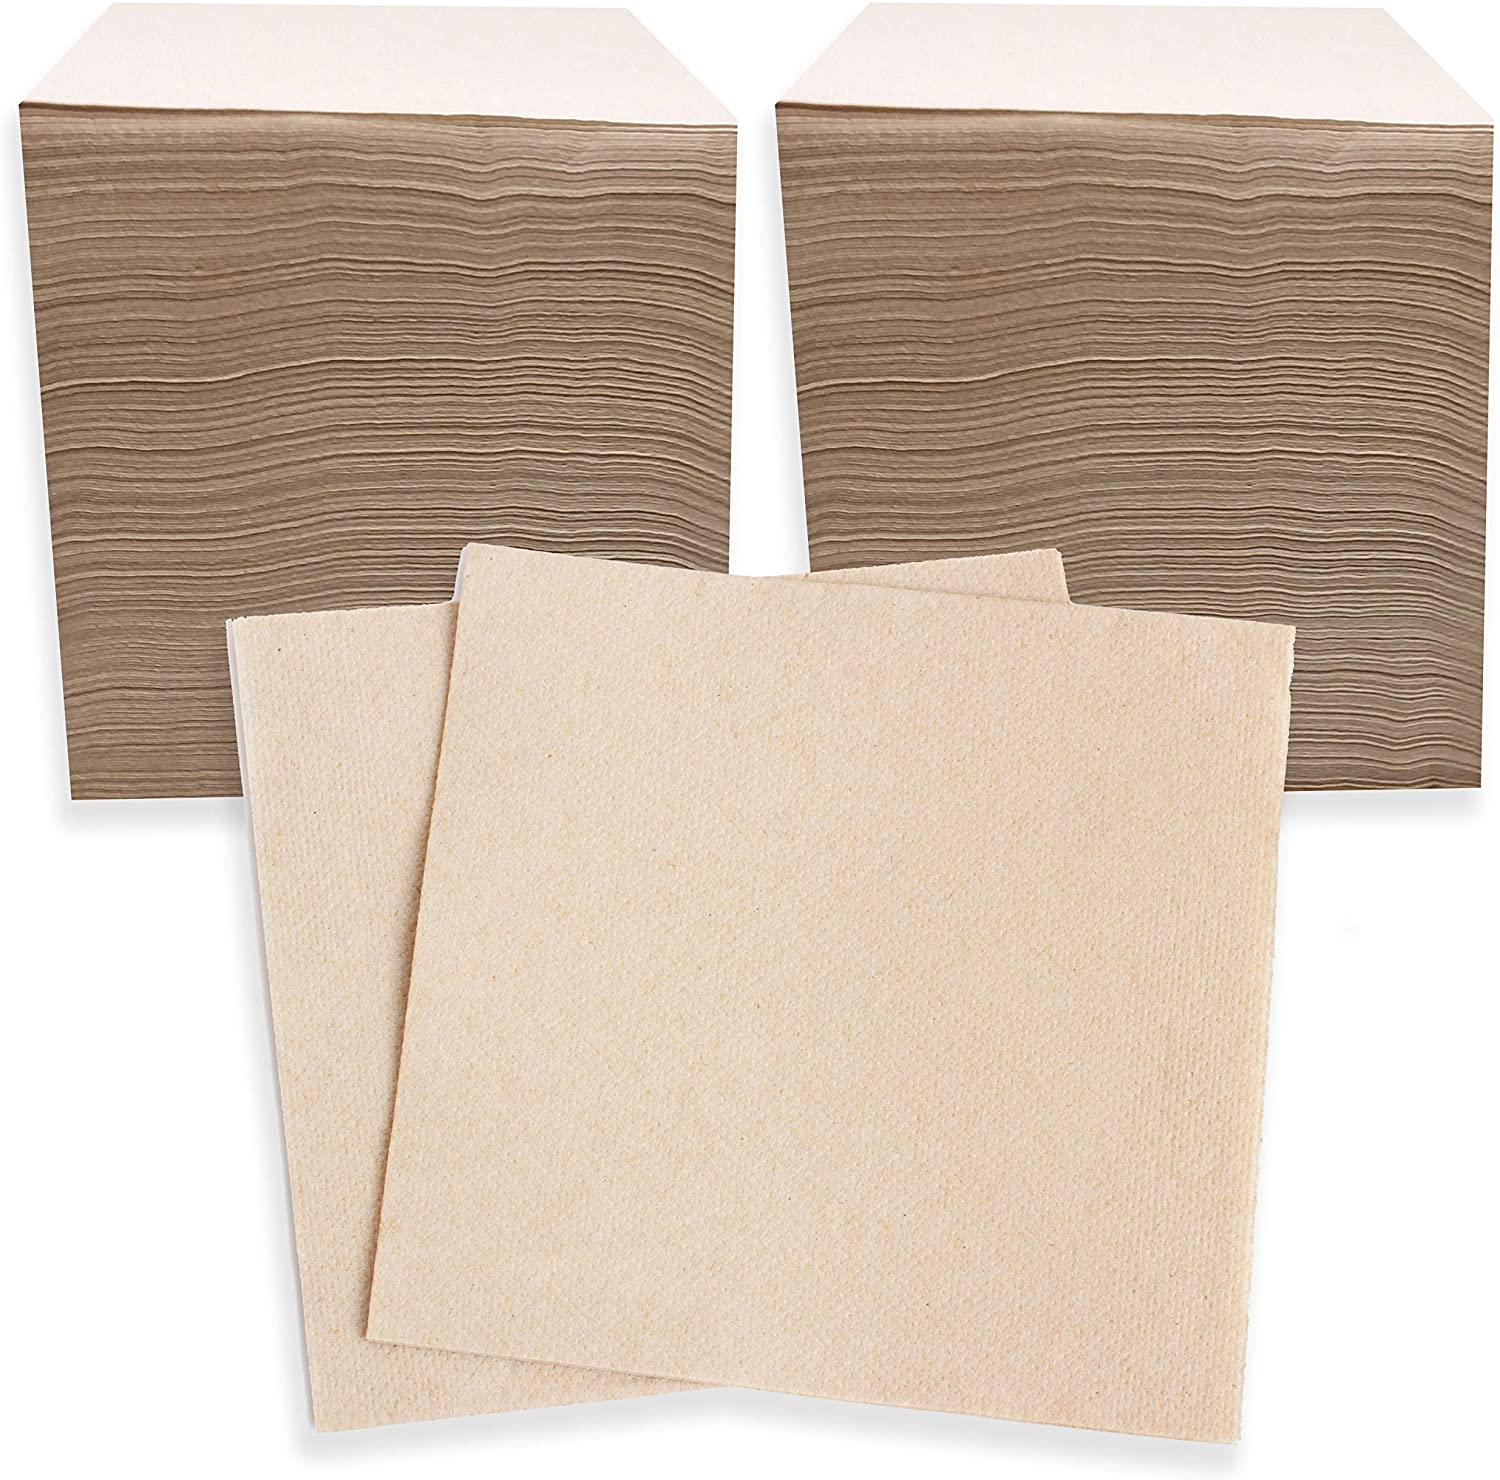 500 Ct 13 x 13 Inch Eco Friendly Biodegradable Recycled Napkins, Compostable Napkins For Lunch